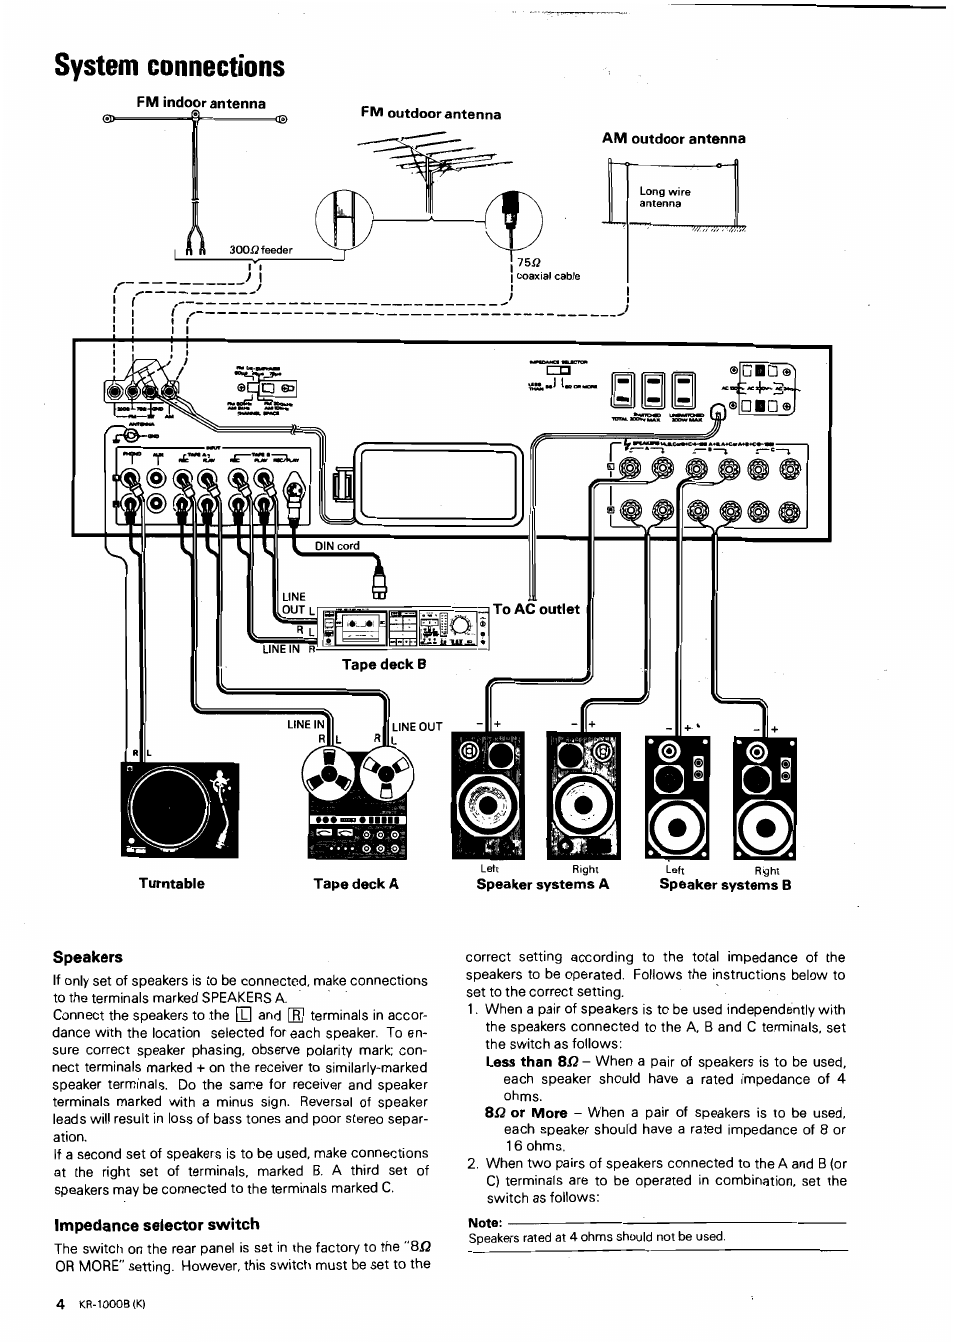 System connections, Speakers, Impedance selector switch